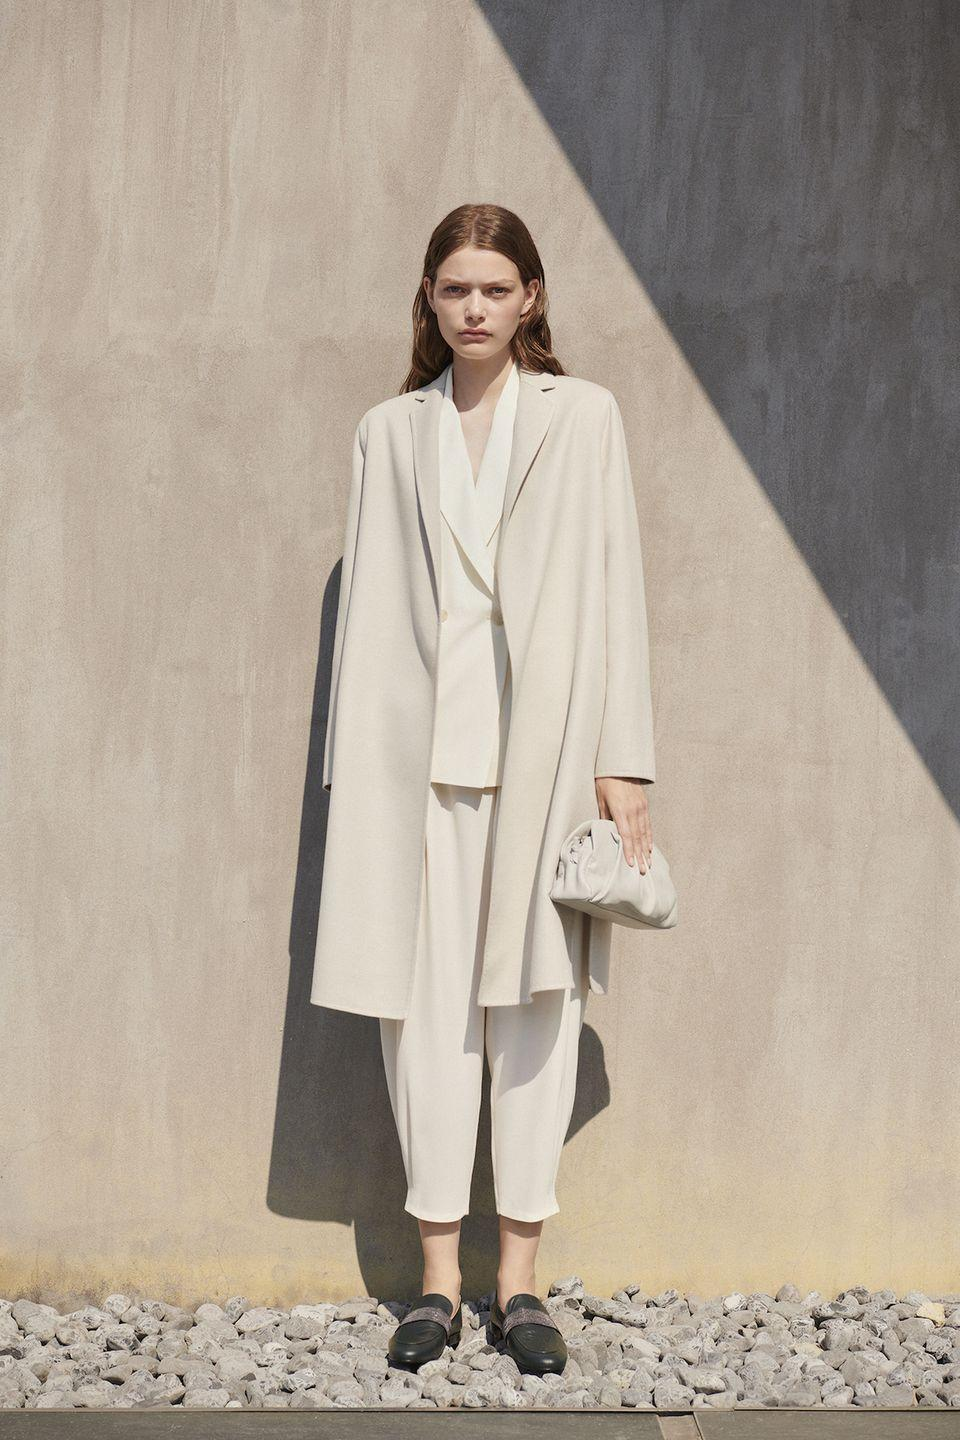 <p>Fabiana Filippi turned down the volume for spring 2021, showing a collection, titled The Perfect Rhythm of Nature, that focuses on uncluttered forms and soft hues. From an elegant Grecian-draped slip in beige and a pleated skirt-and-top combo in mauve to a sleek sky blue coat and a refined brocade dress with a sarong skirt, the Italian label proved that one need not shout to make an impact. —<em>Barry Samaha</em></p>